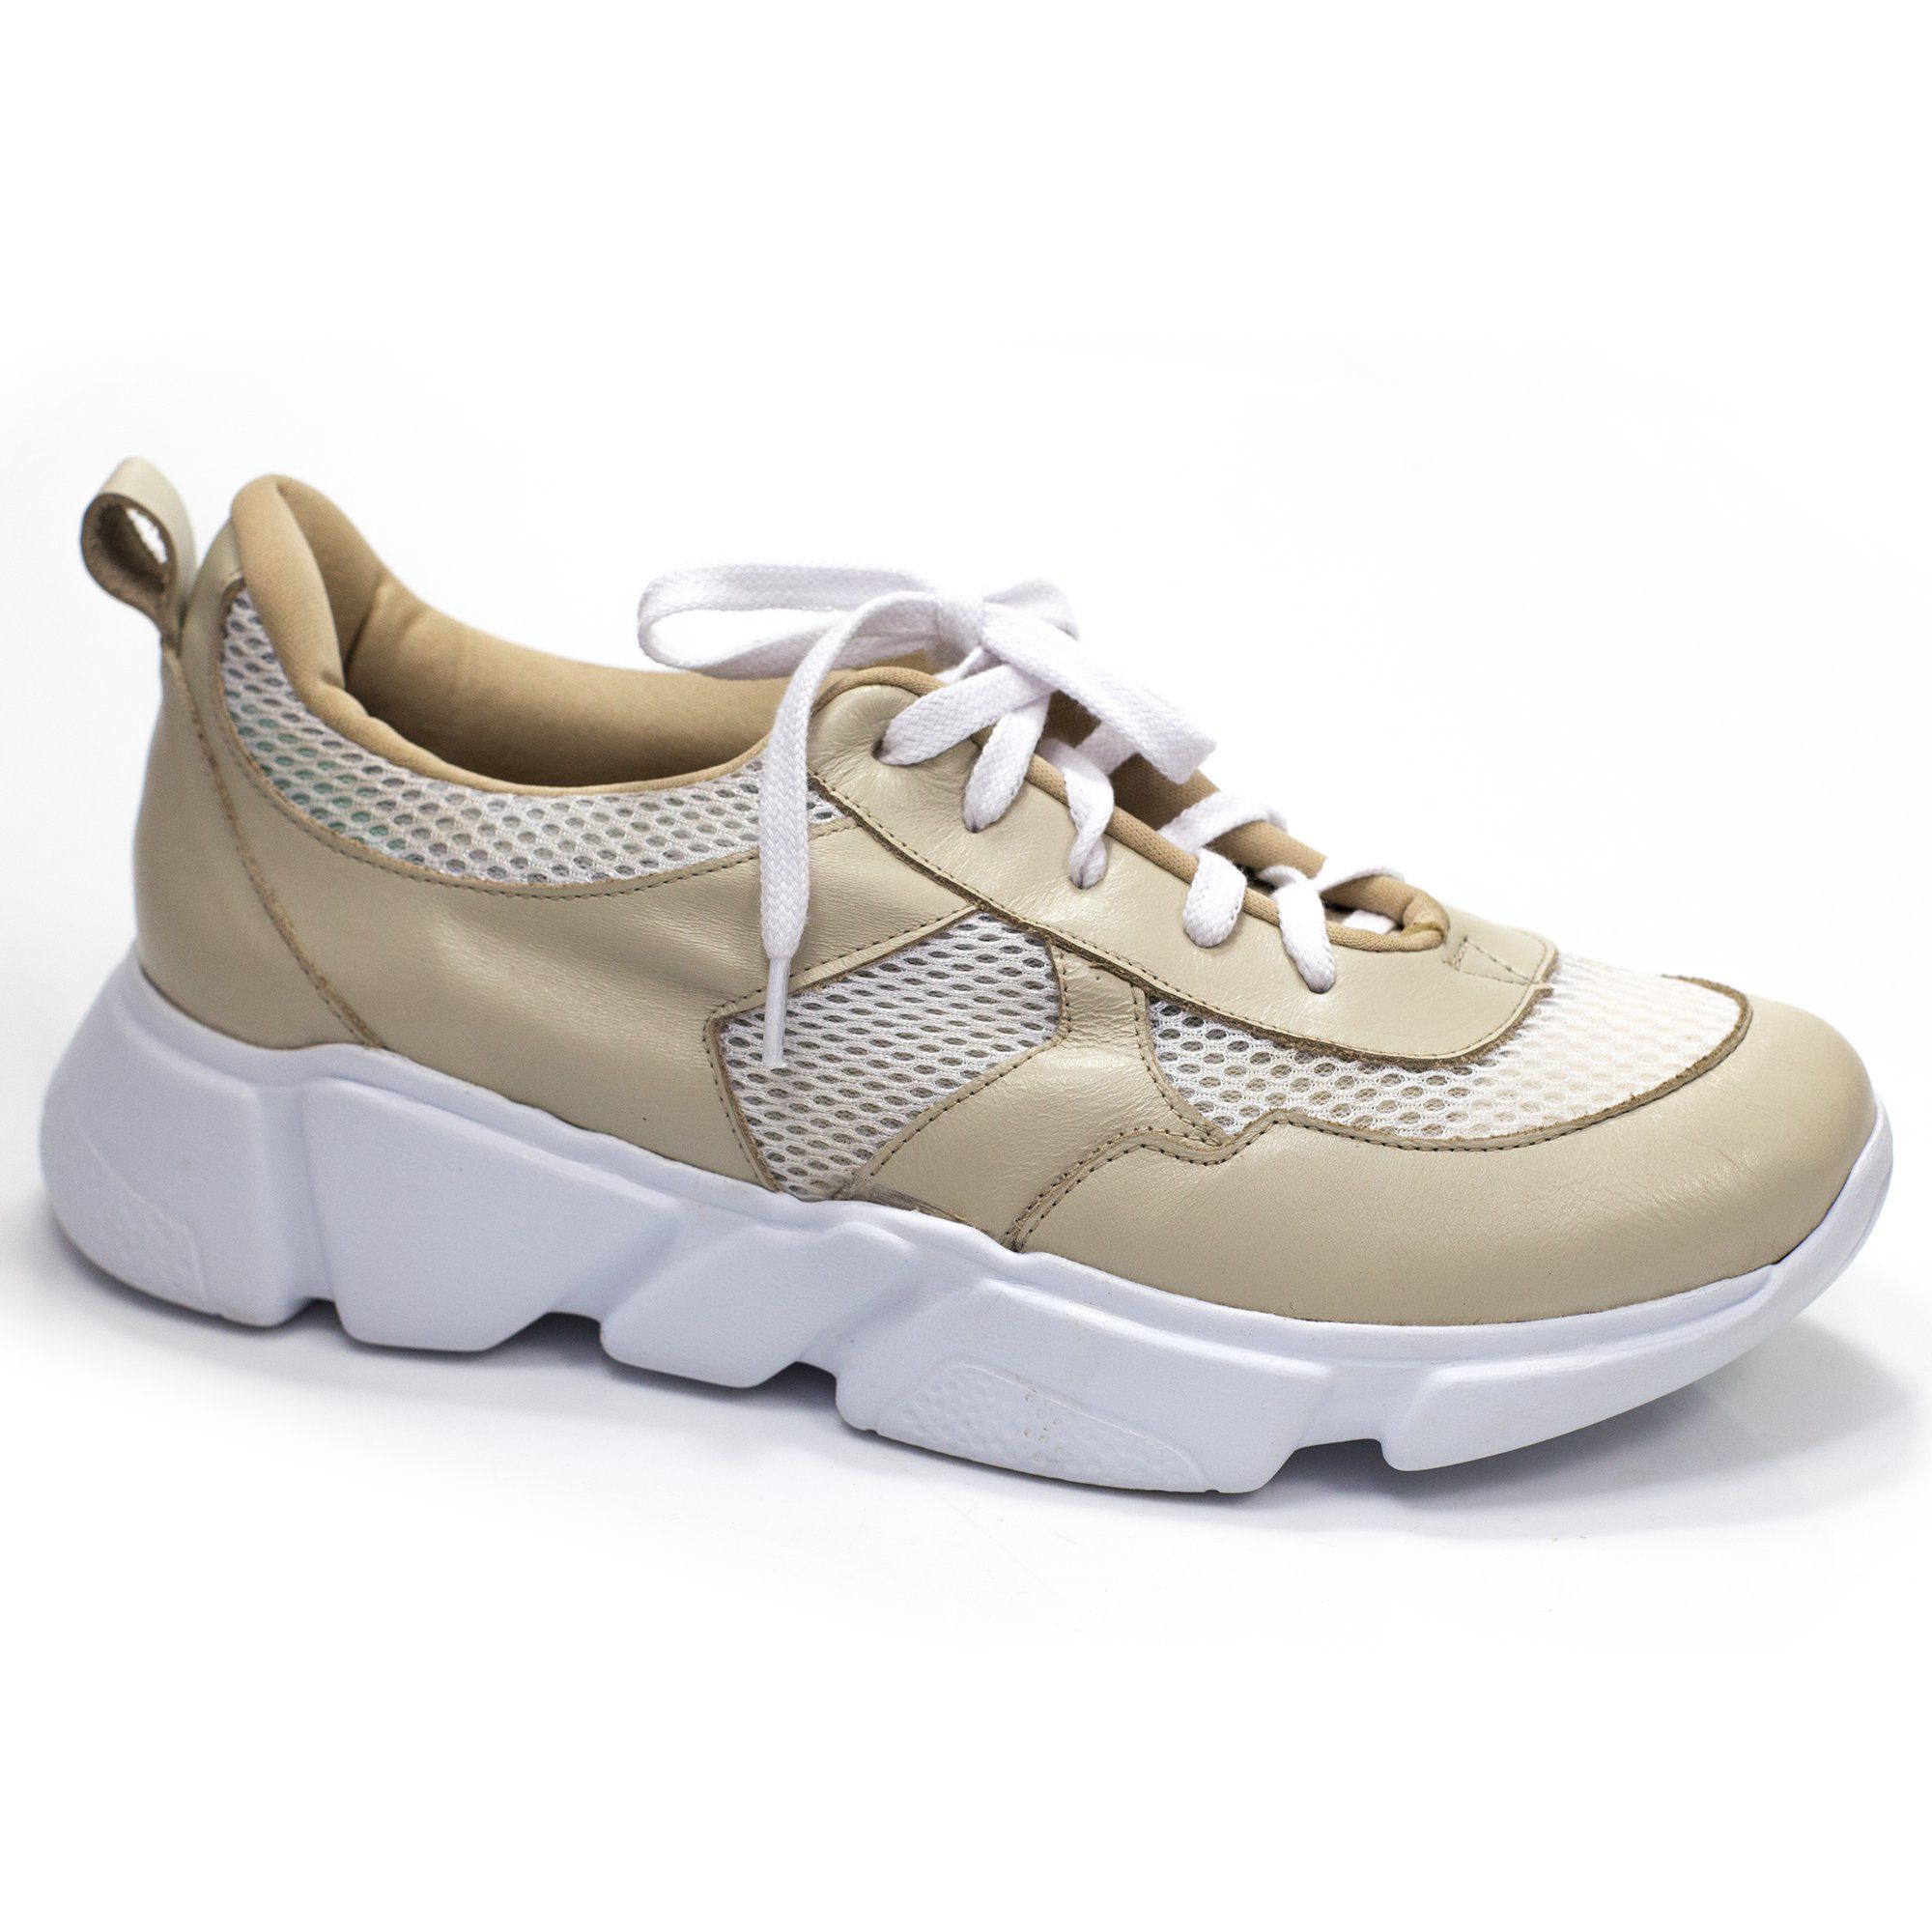 0434fc1980 tenis chunky oasis p1532 quickview - Busca na ZPZ SHOES